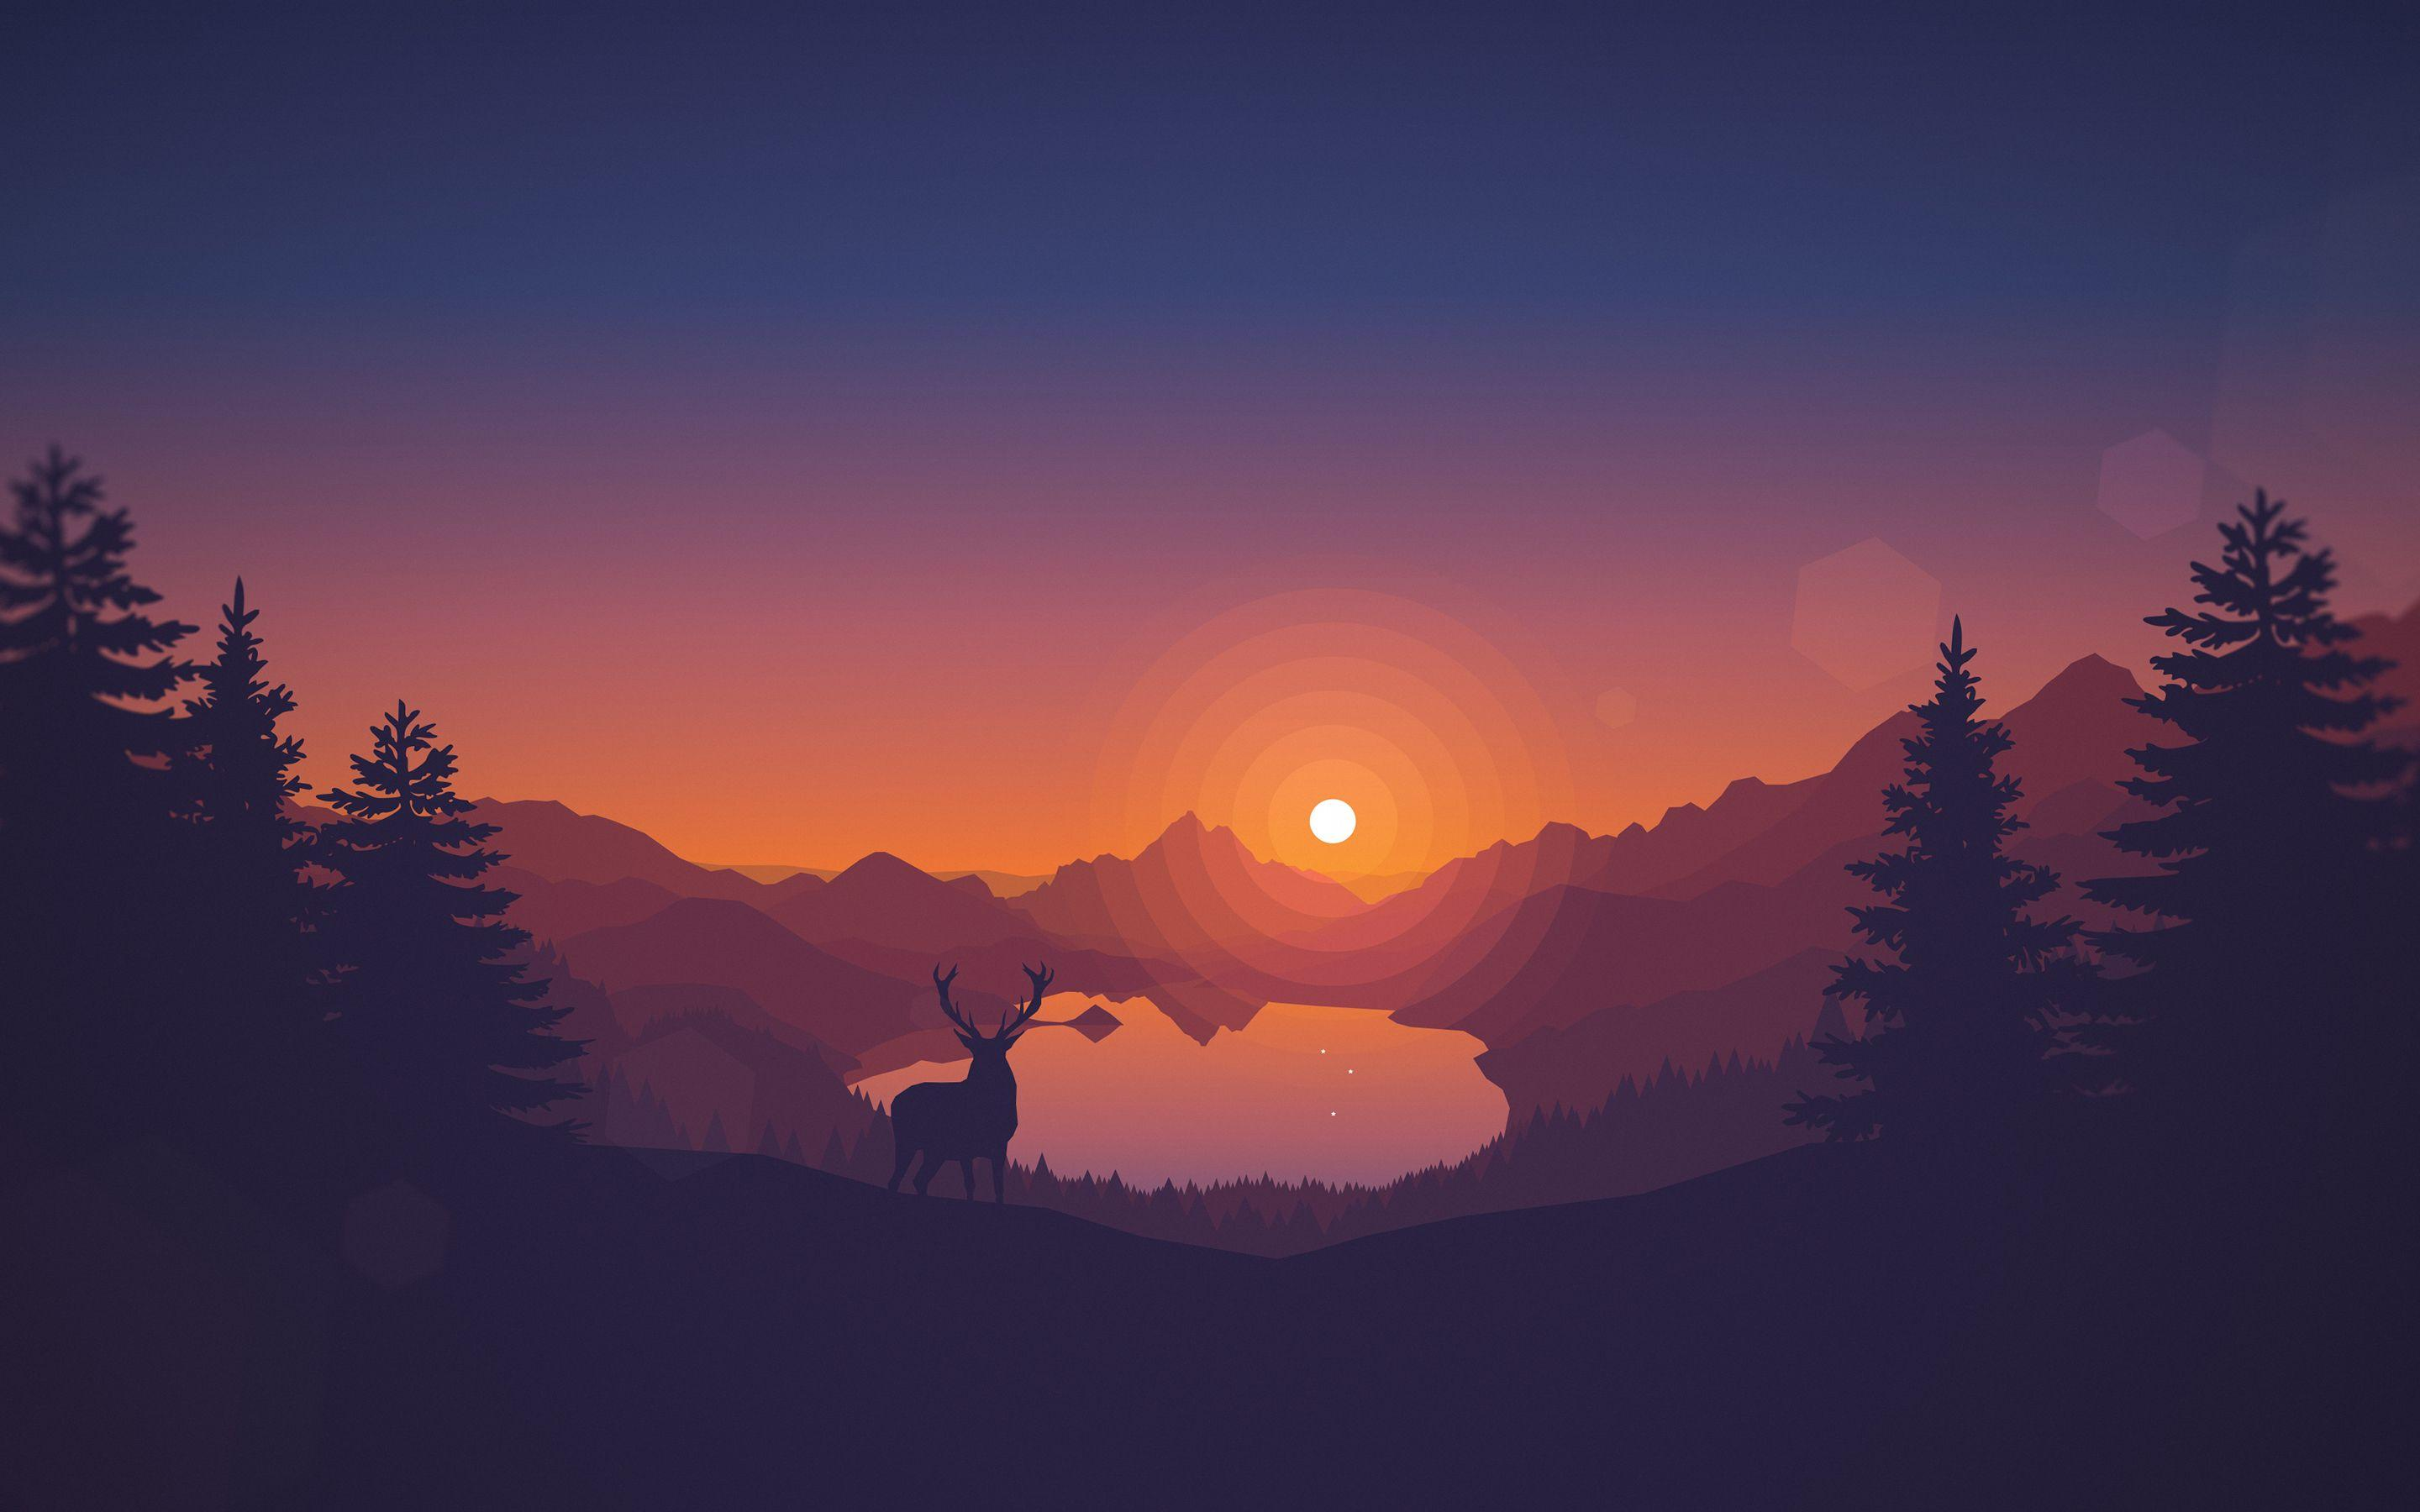 Scenic Sunset Lakeview Wallpapers Wallpaper Cave